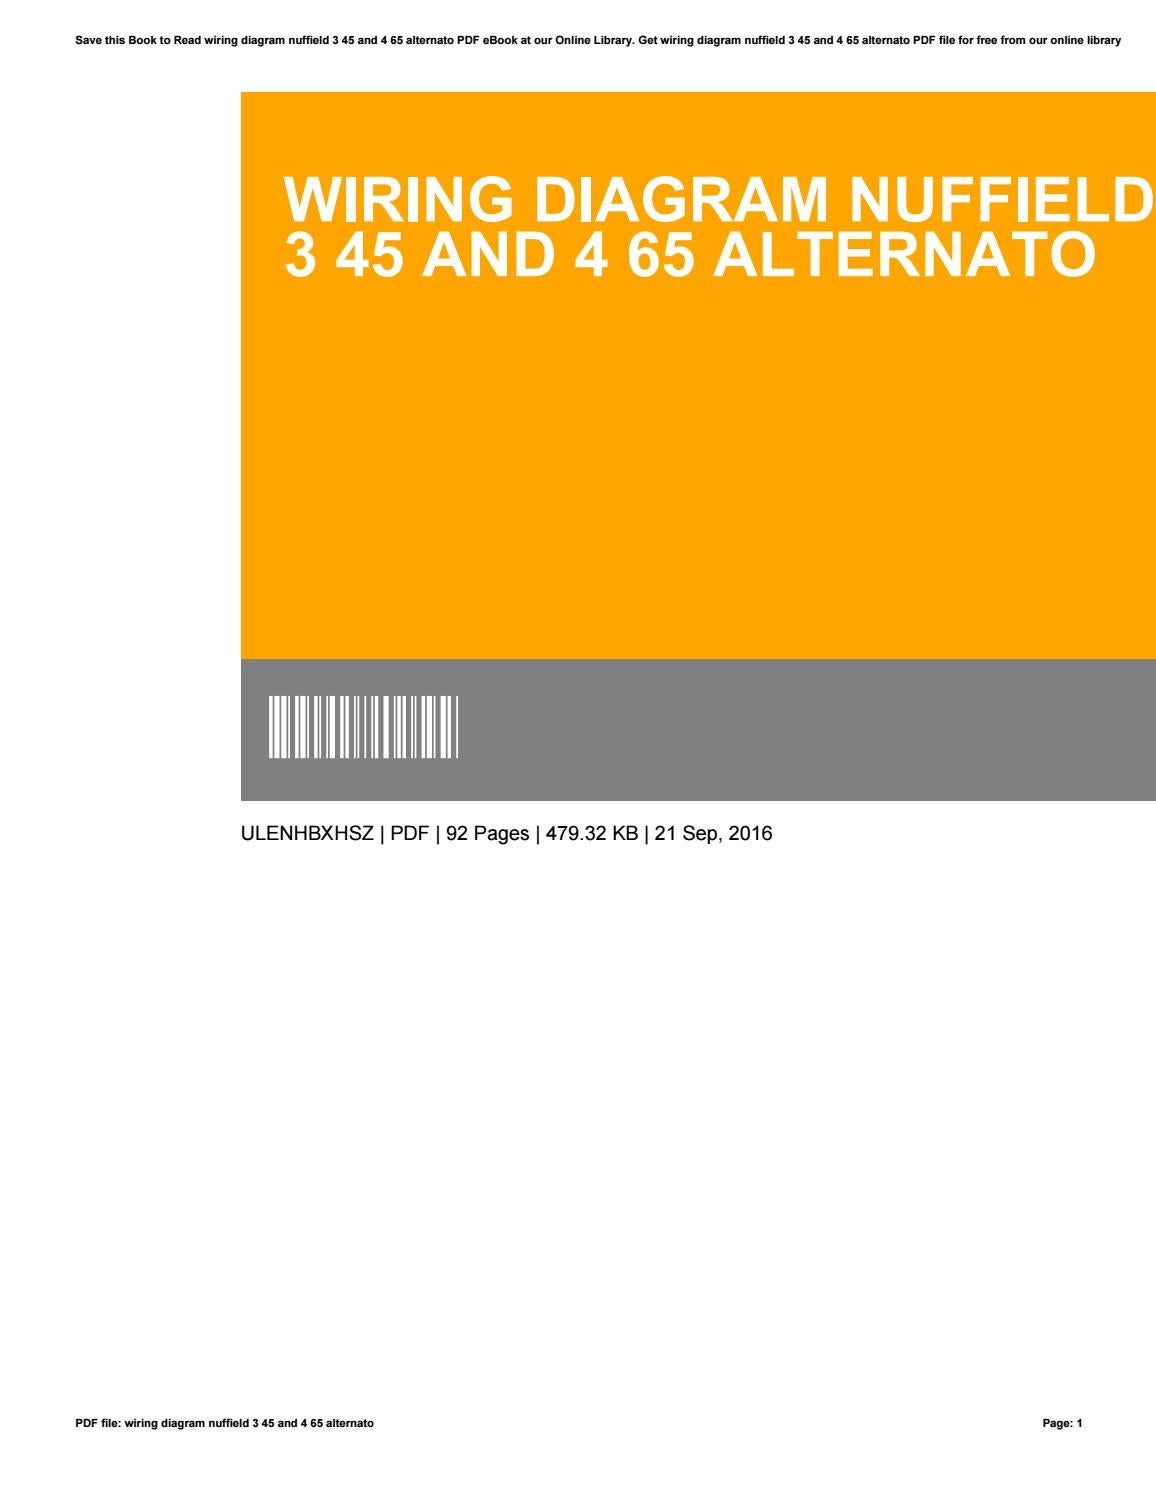 Wiring Diagram Nuffield 3 45 And 4 65 Alternato By Gregorythomas3649 Complete Book Pdf Issuu